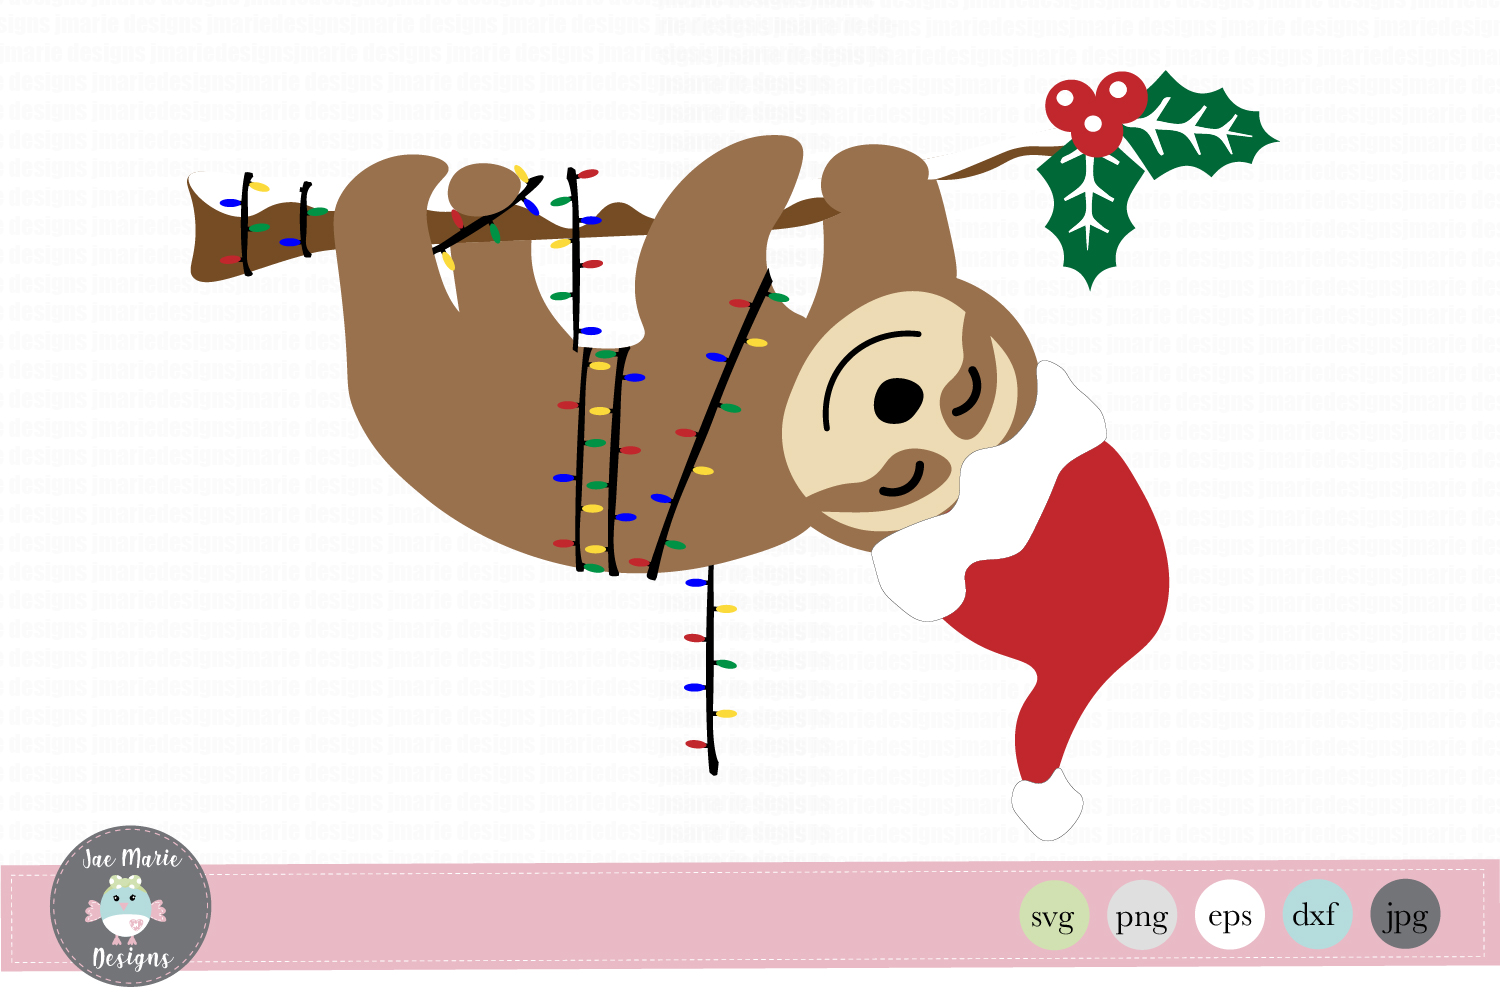 Download Free Christmas Sloth Graphic By Thejaemarie Creative Fabrica for Cricut Explore, Silhouette and other cutting machines.